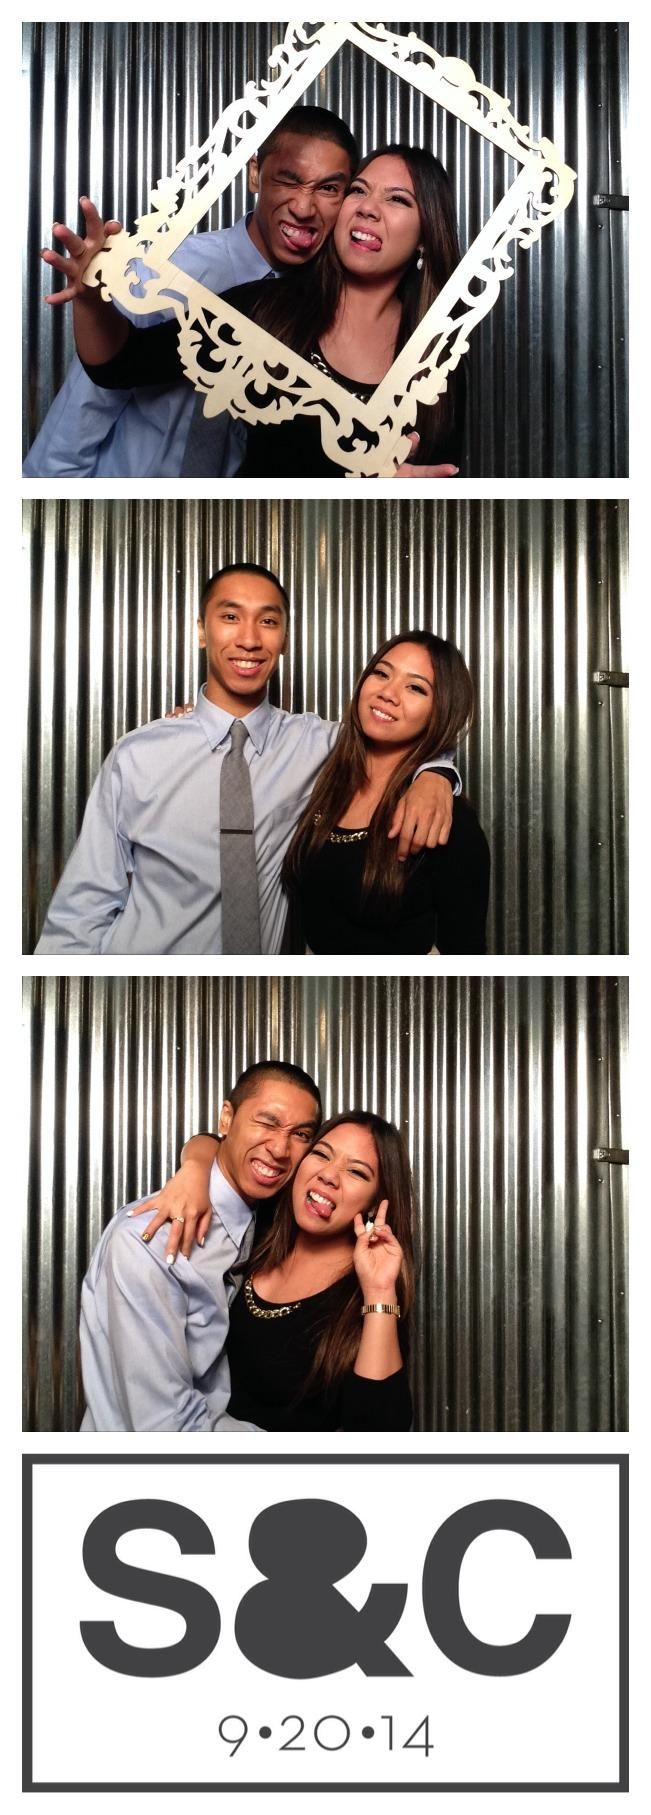 SimpleBooth can create amazing quality photo strips